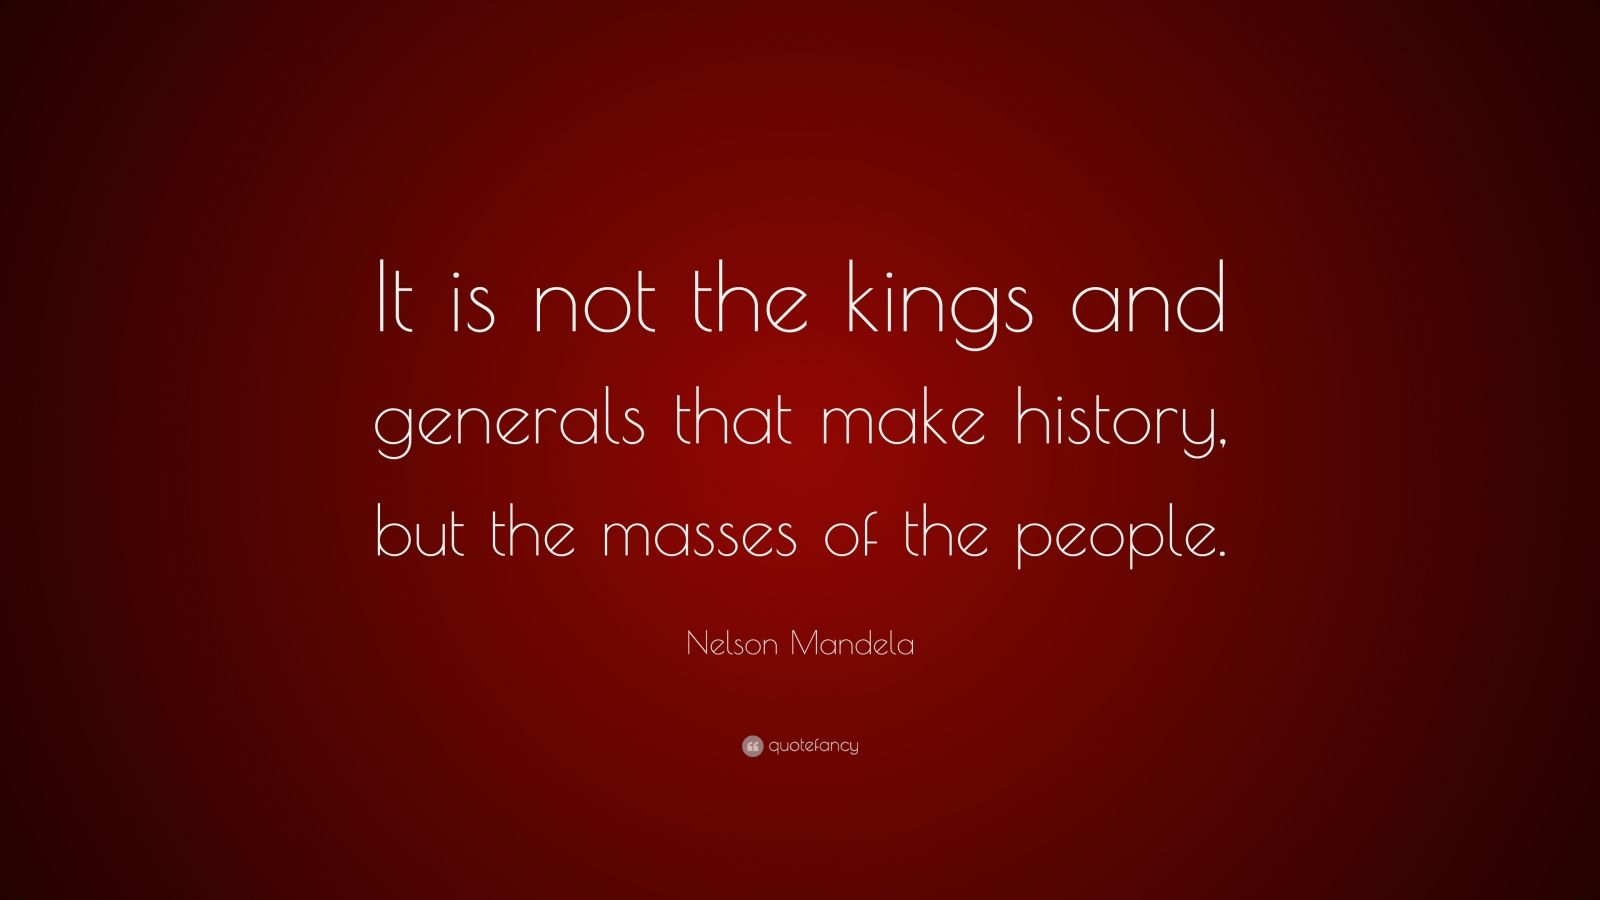 the people are not the masses